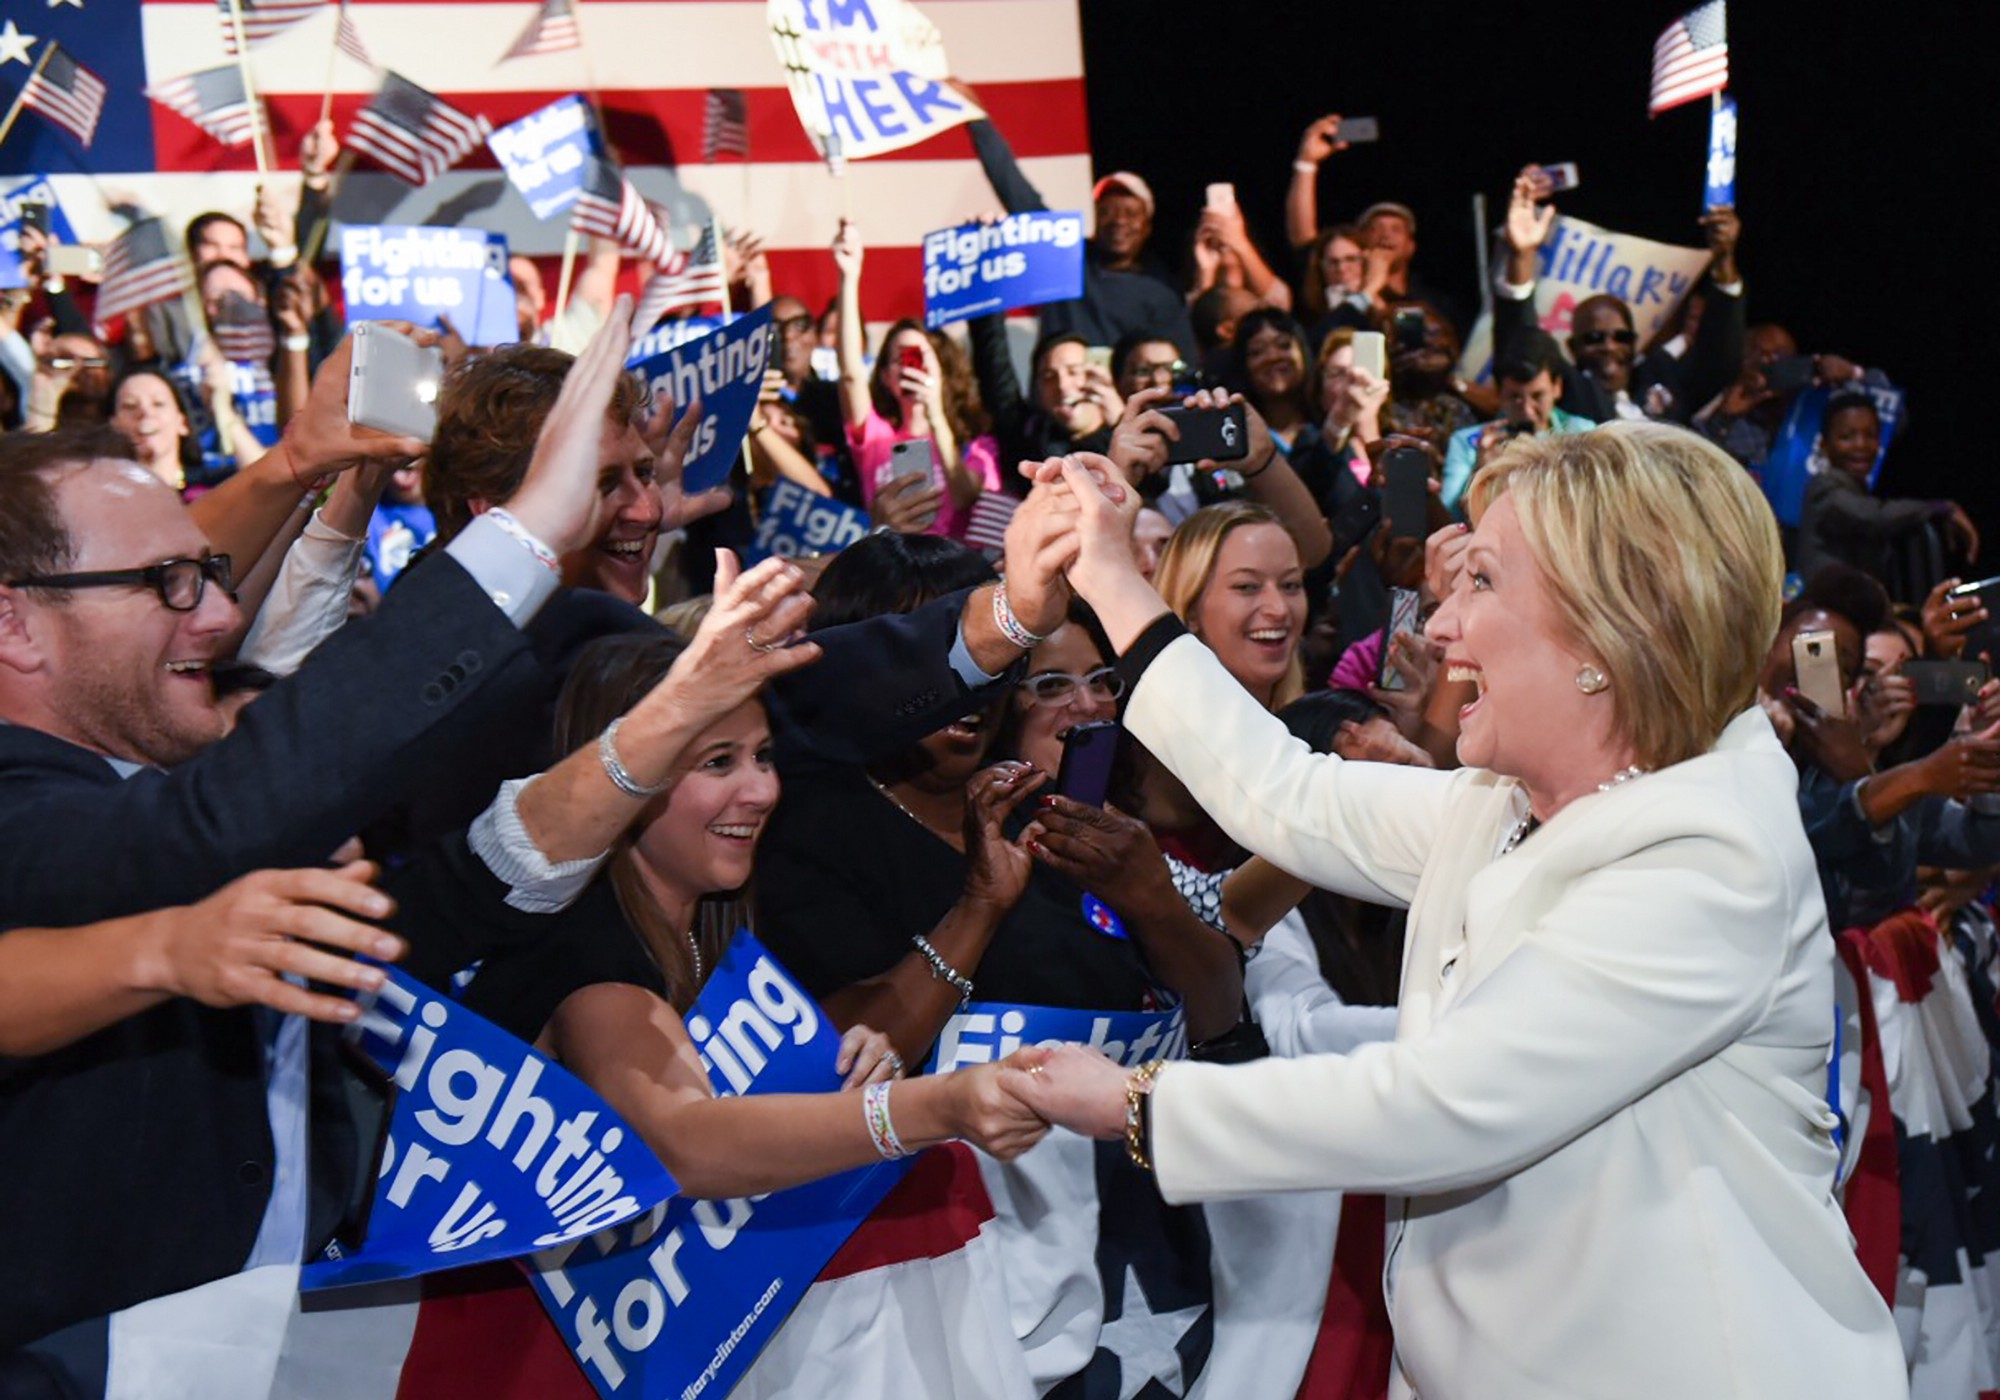 A behind-the-scenes look at March on the campaign trail with ...